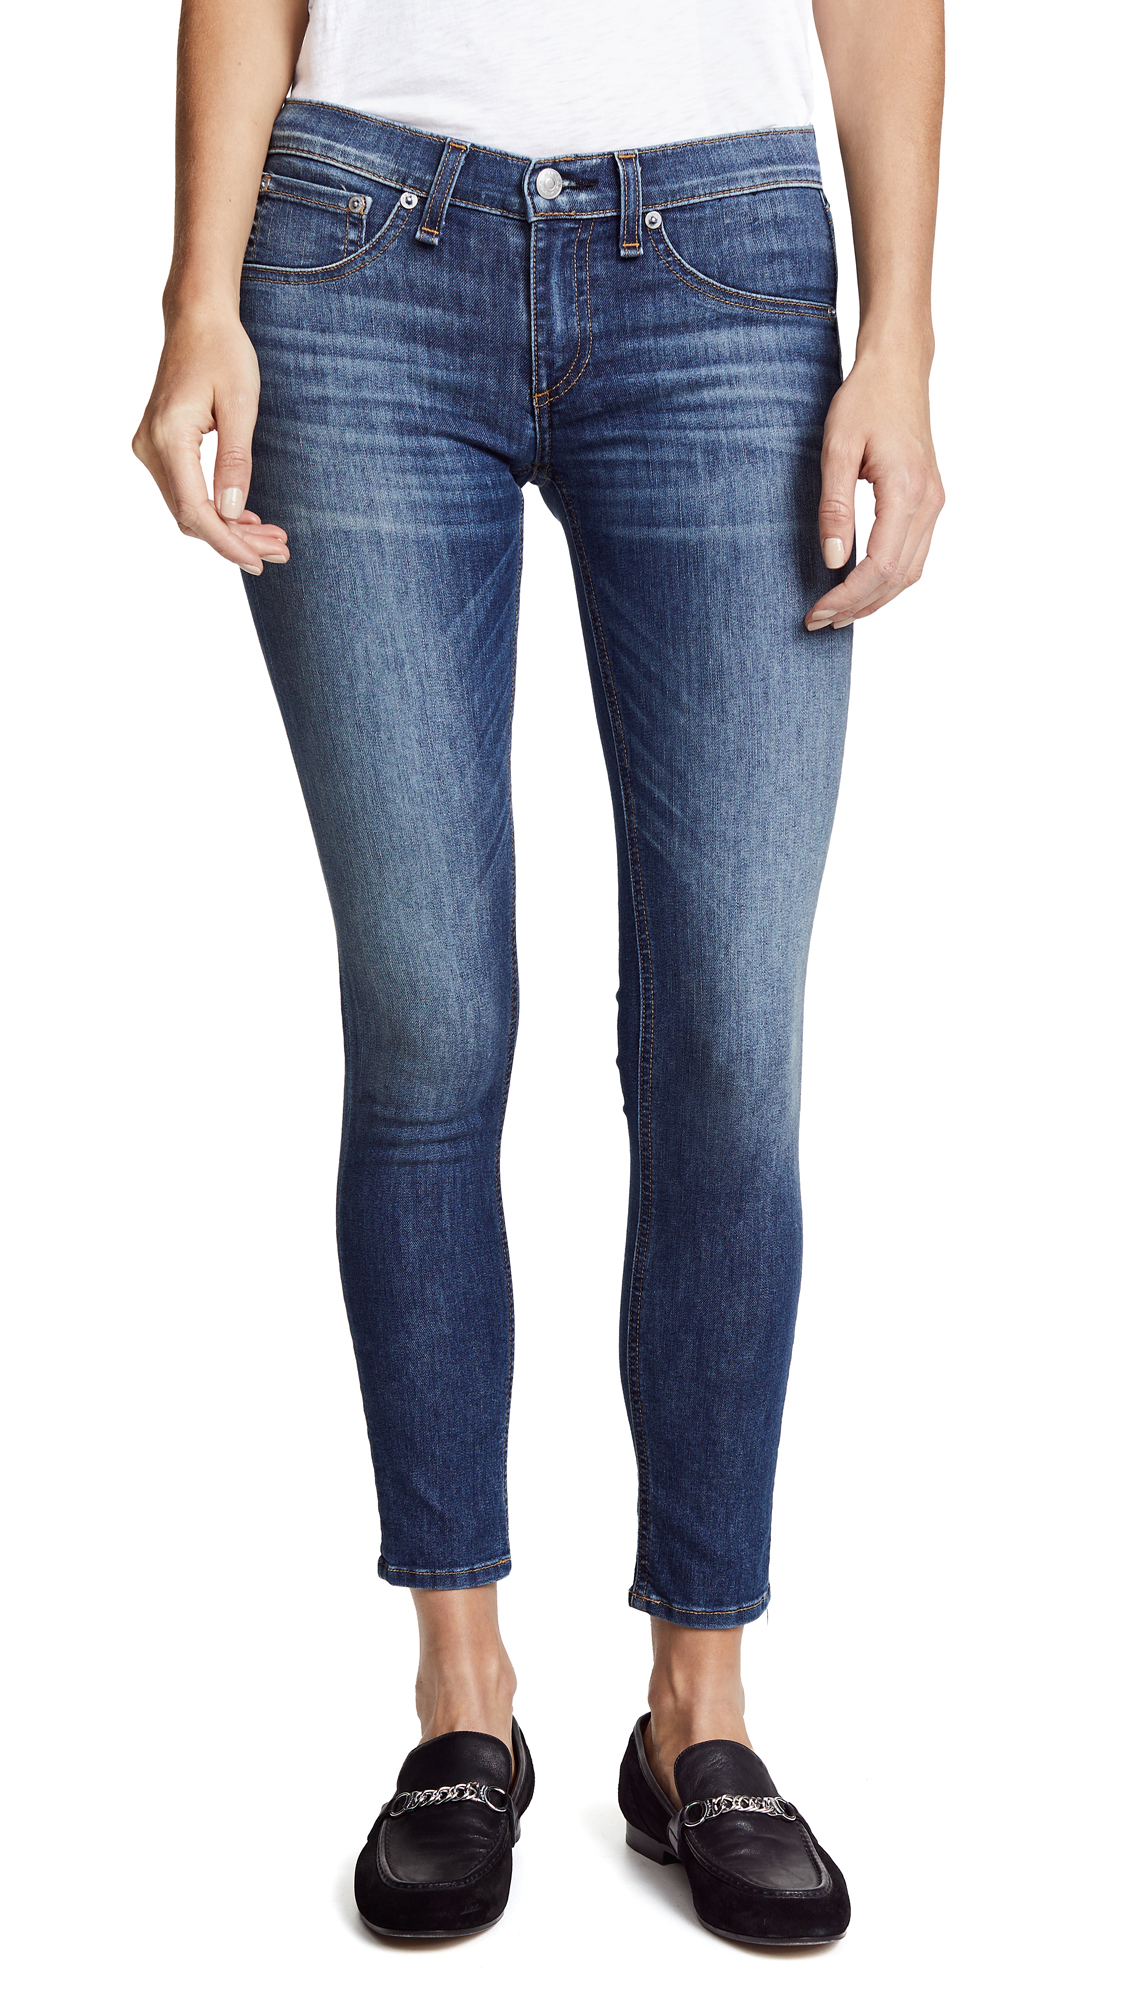 Buy Rag & Bone/JEAN online - photo of Rag & Bone/JEAN The Capri Jeans